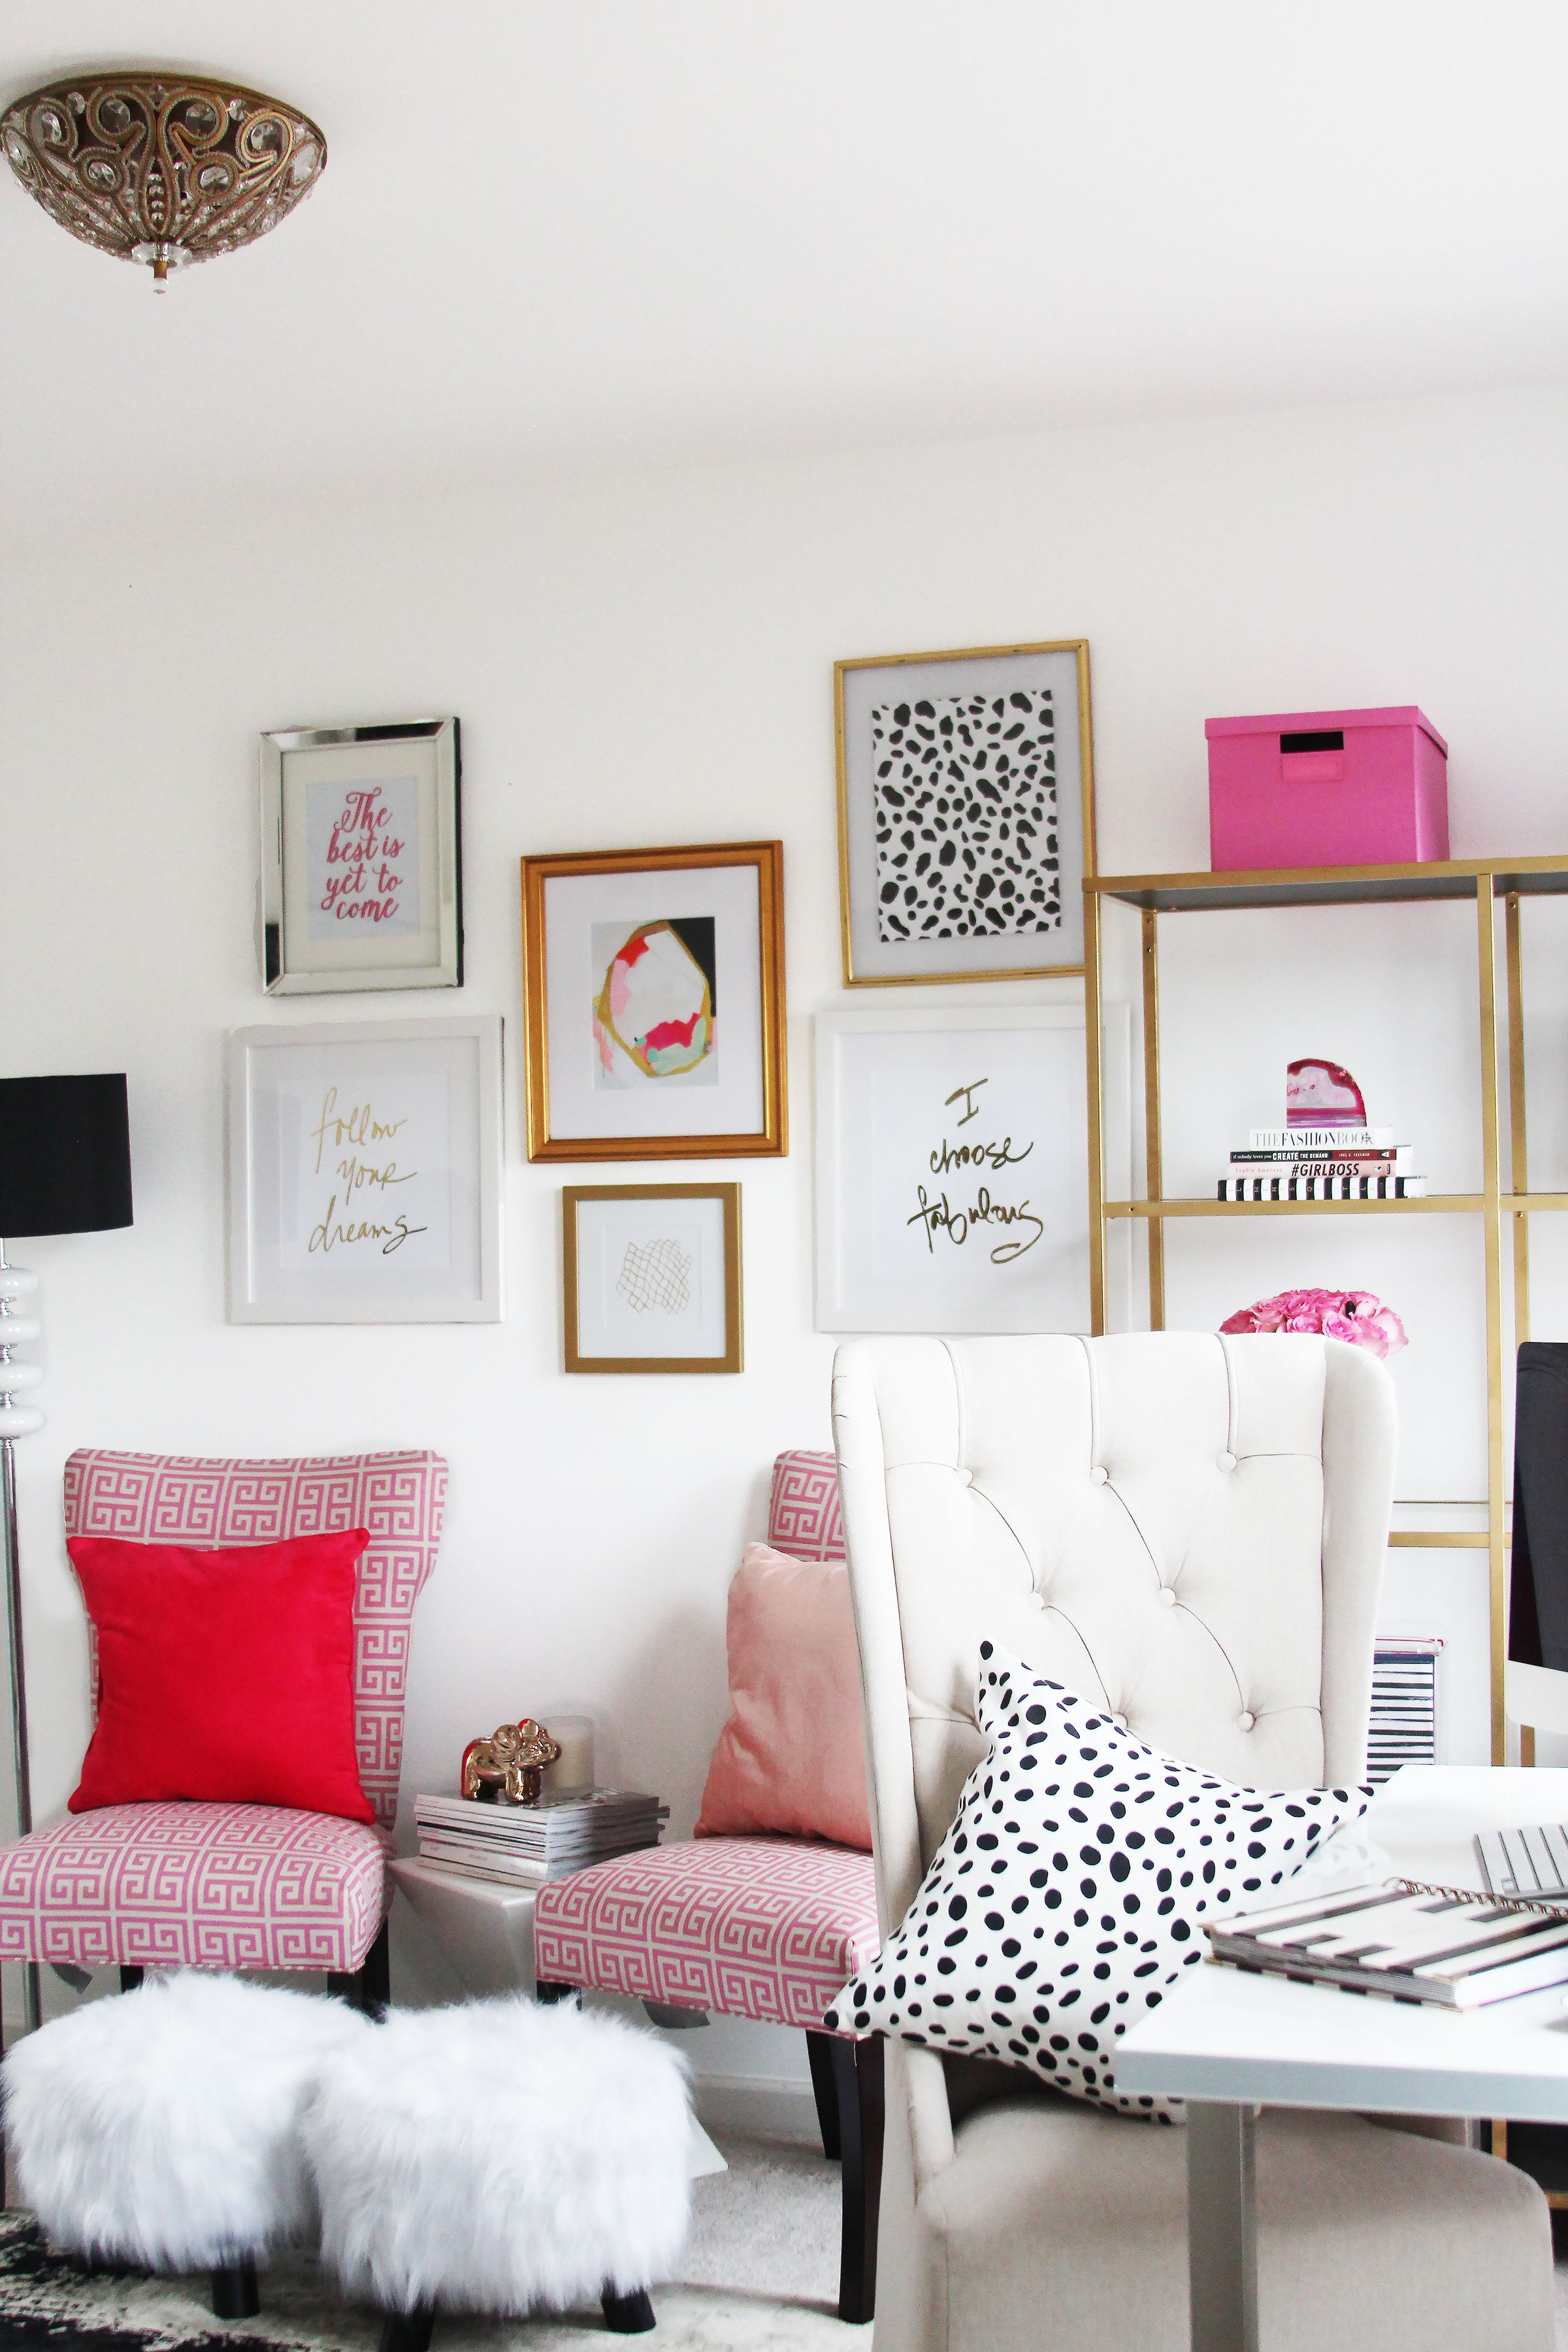 meagan home office. meagan wardu0027s girlychic home office tour s